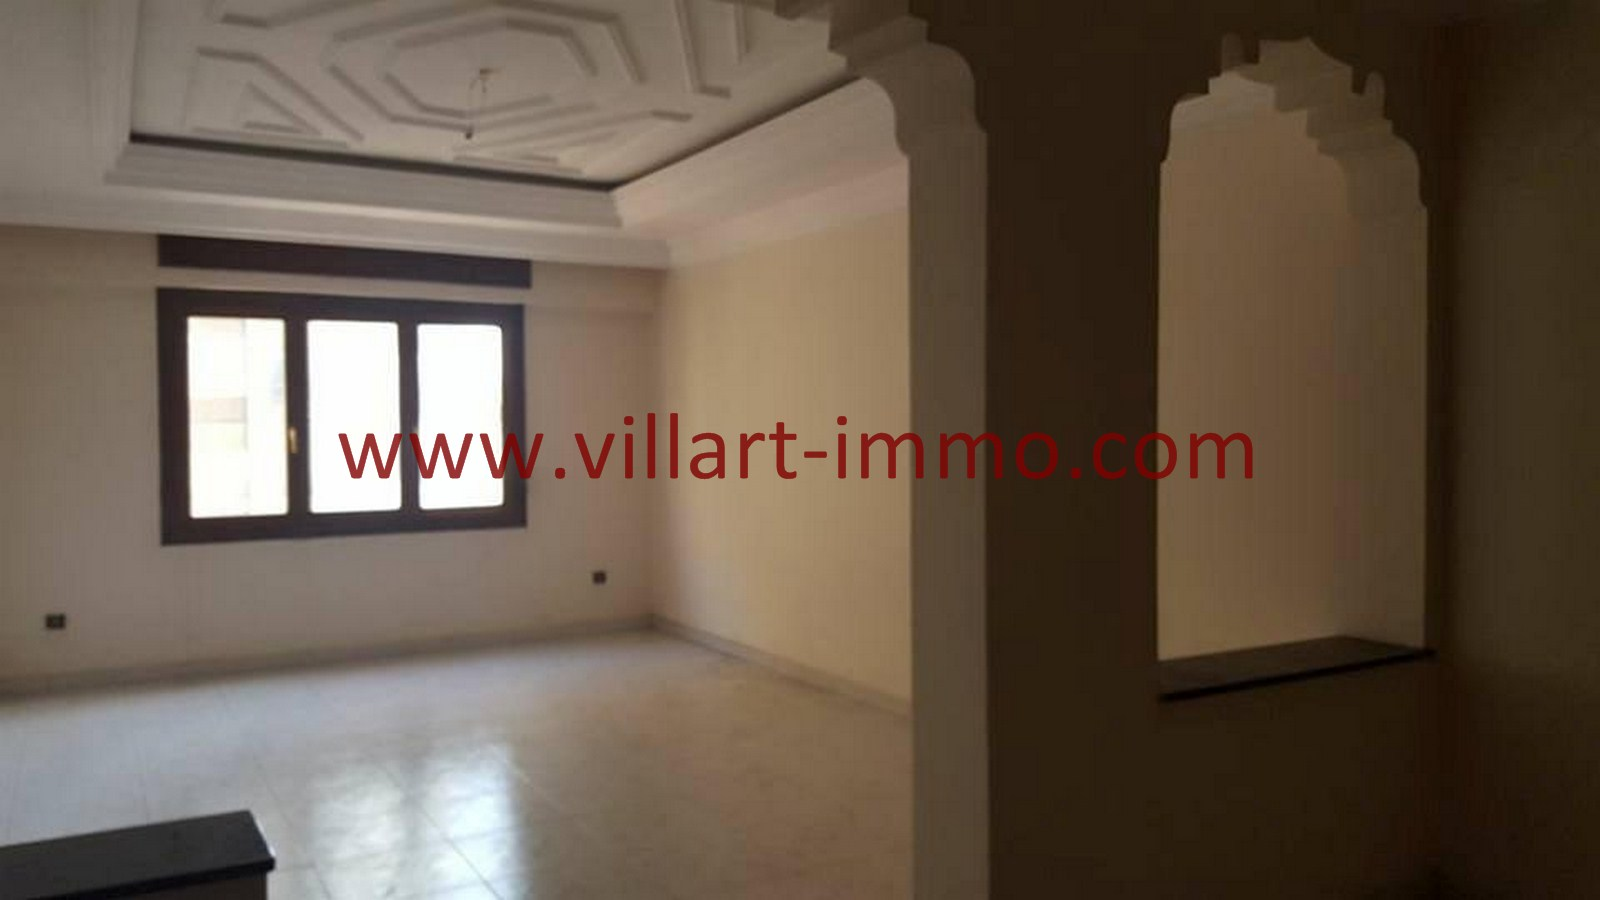 1-Vente-Appartement-Tanger-Centre-ville-Salon-VA488-Villart Immo